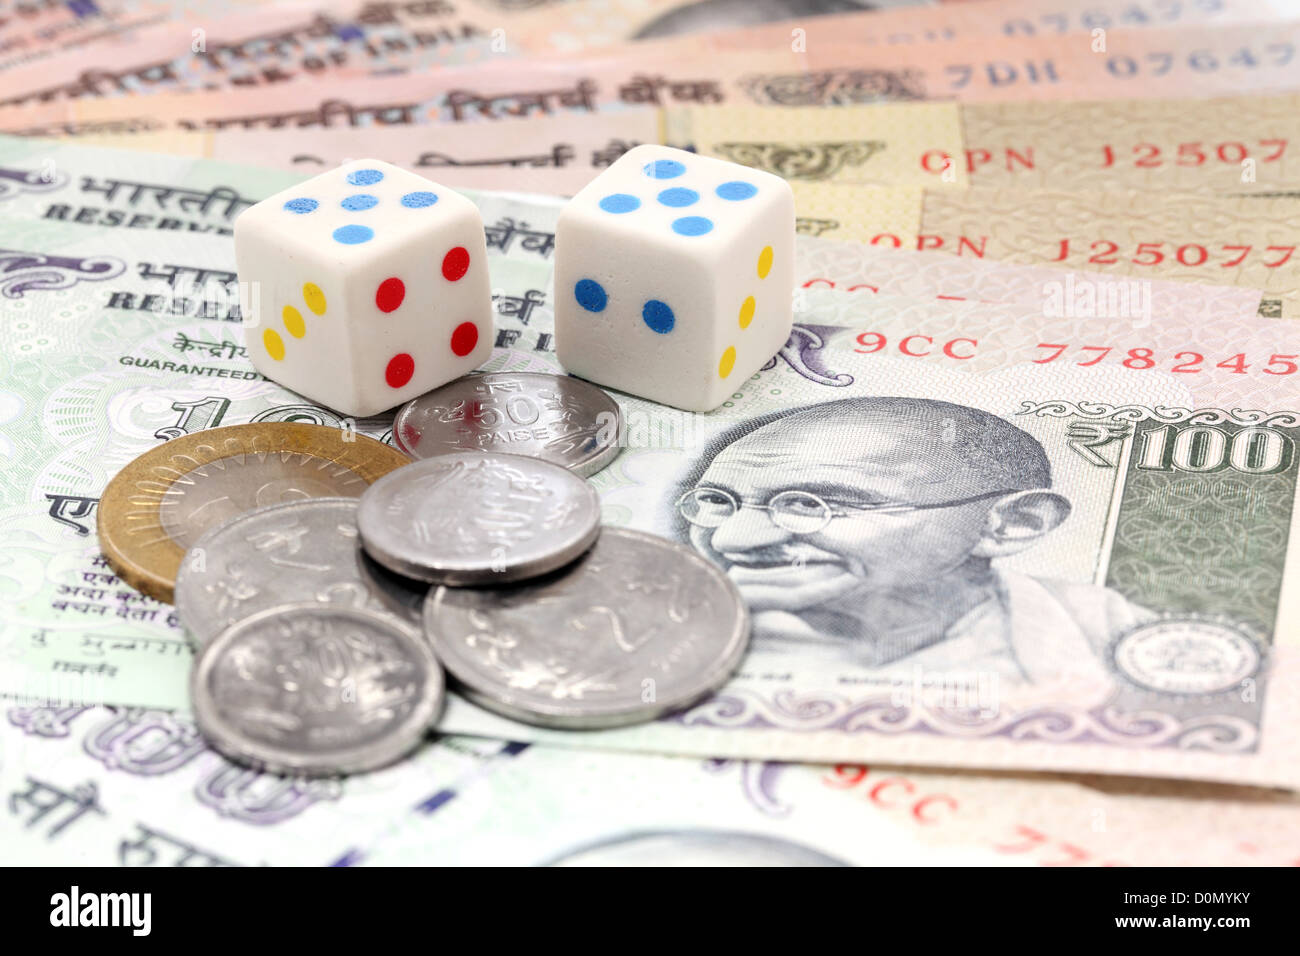 Dices and rupee coins on Indian rupee notes - Stock Image